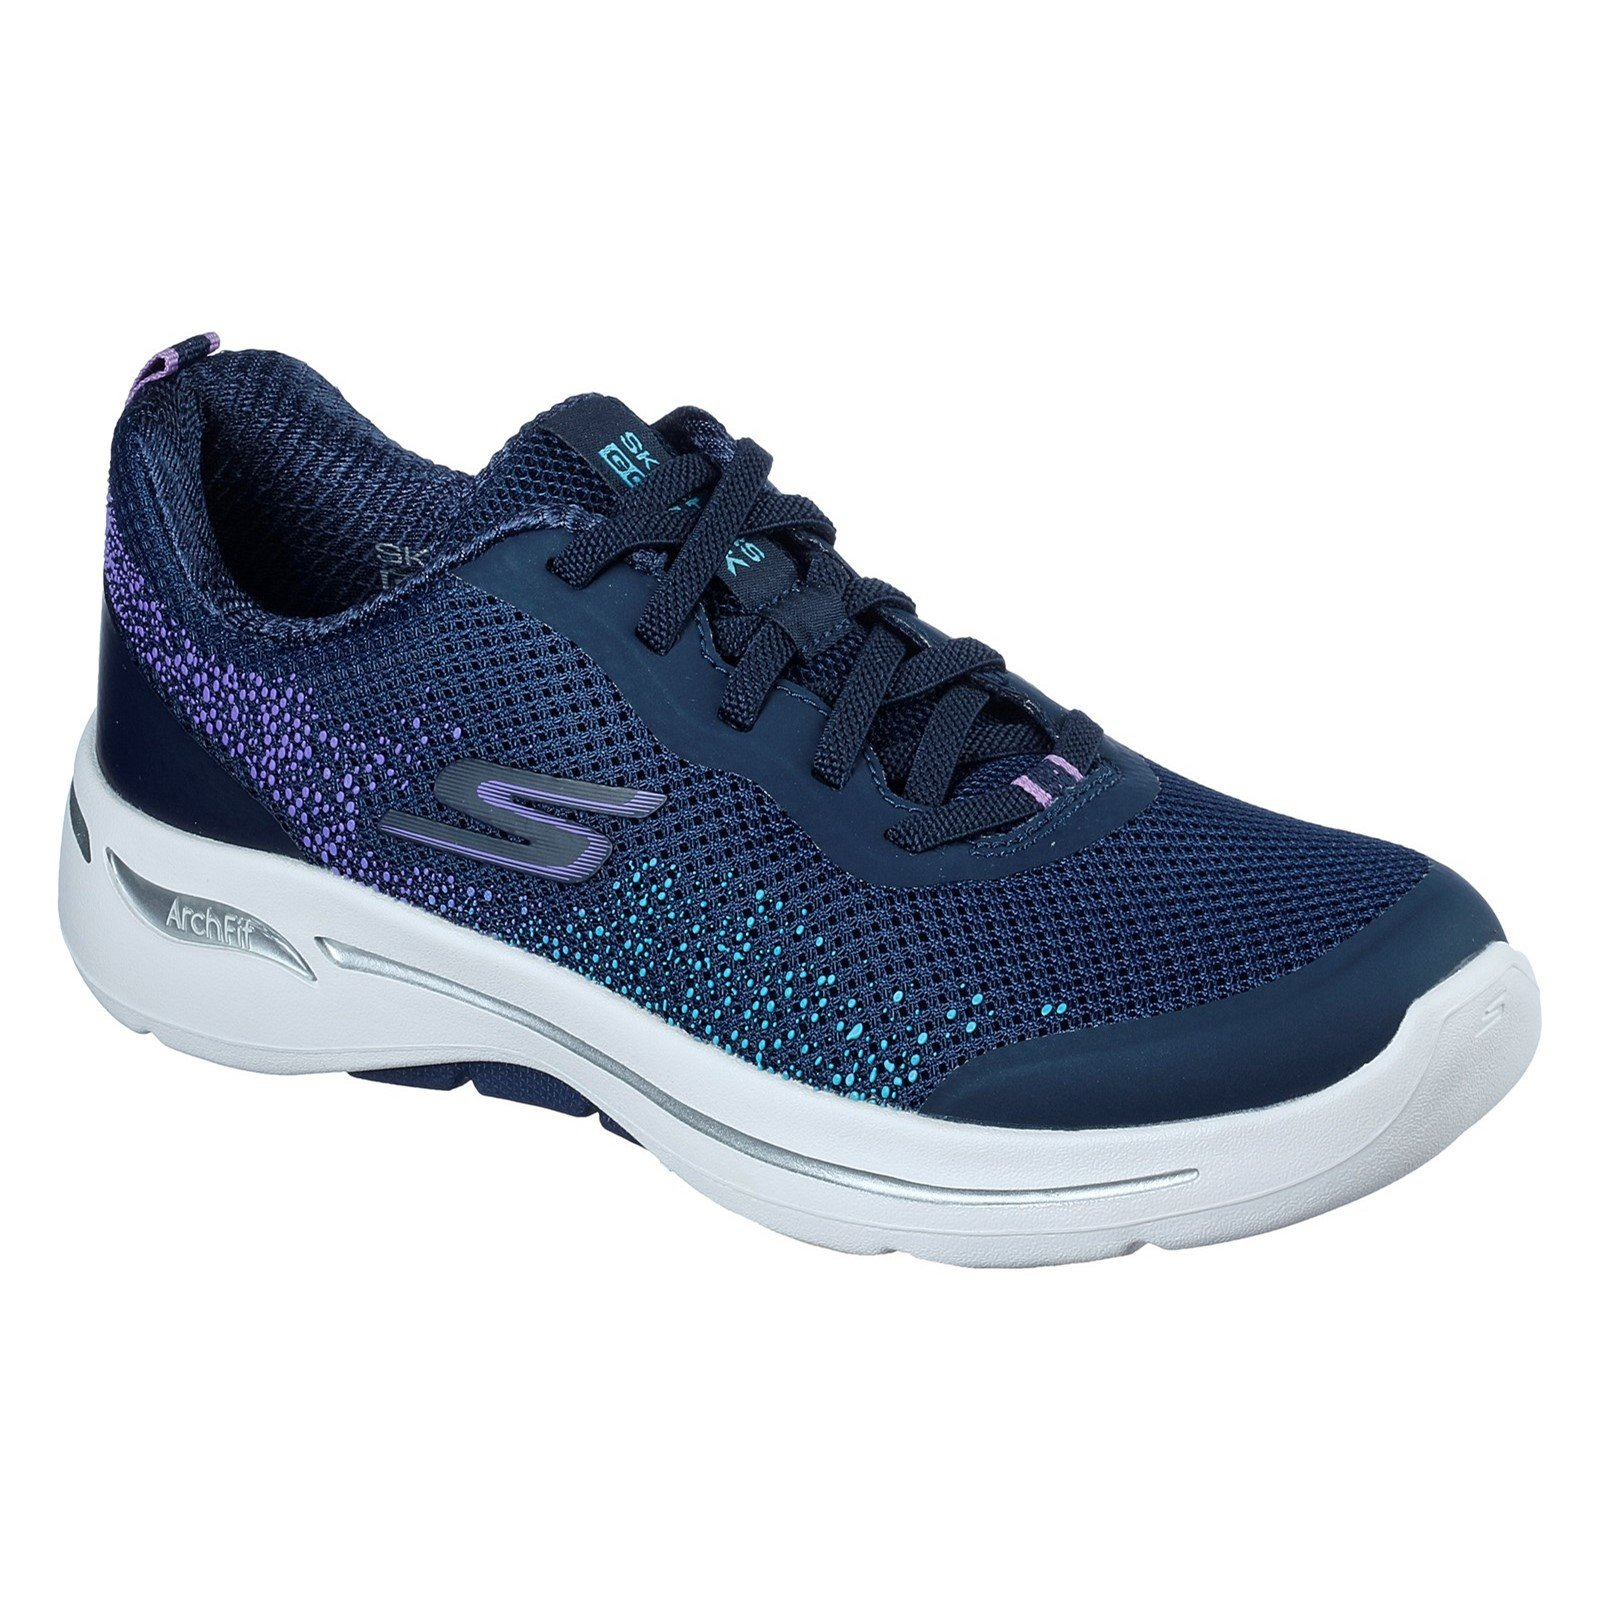 Skechers Women's Go Walk Arch Fit Flying Stars Trainer Various Colours 32841 - Navy/Lavender 4